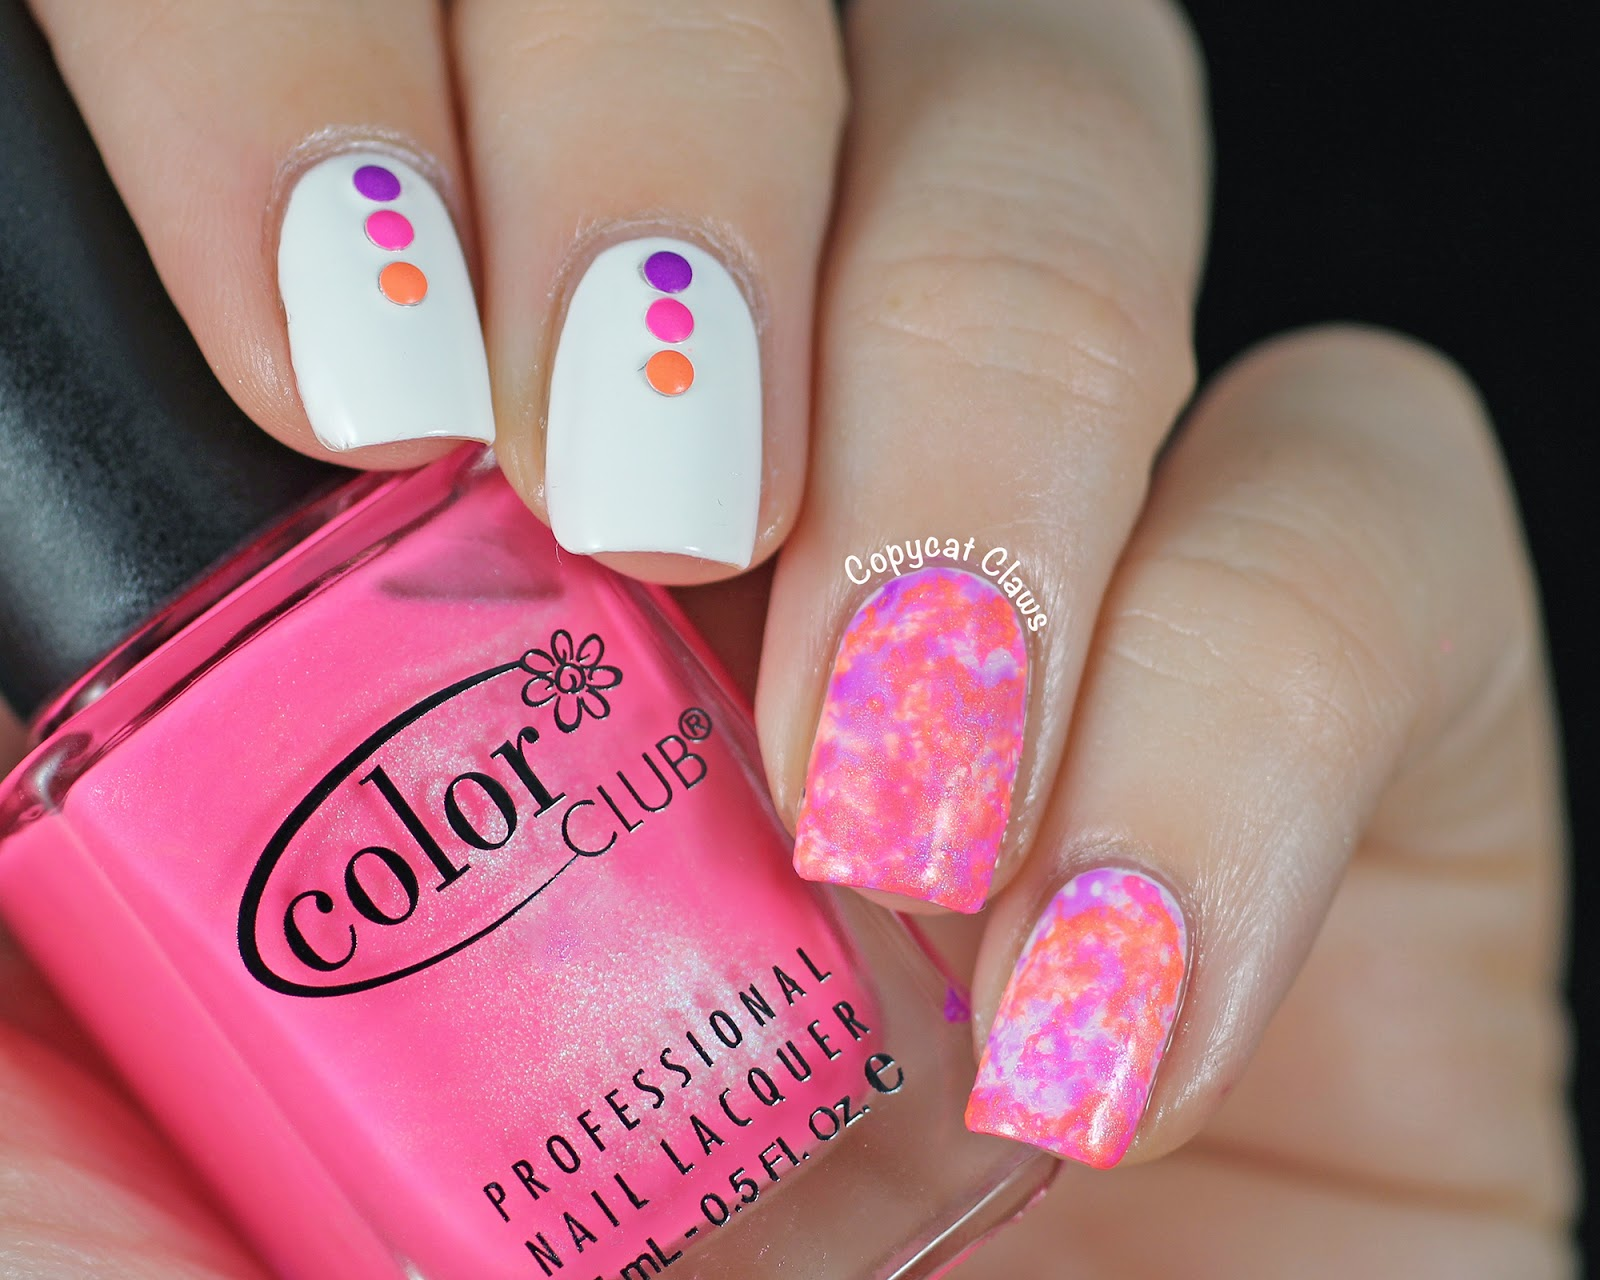 Copycat Claws: Neon Water Spotted Nail Fail